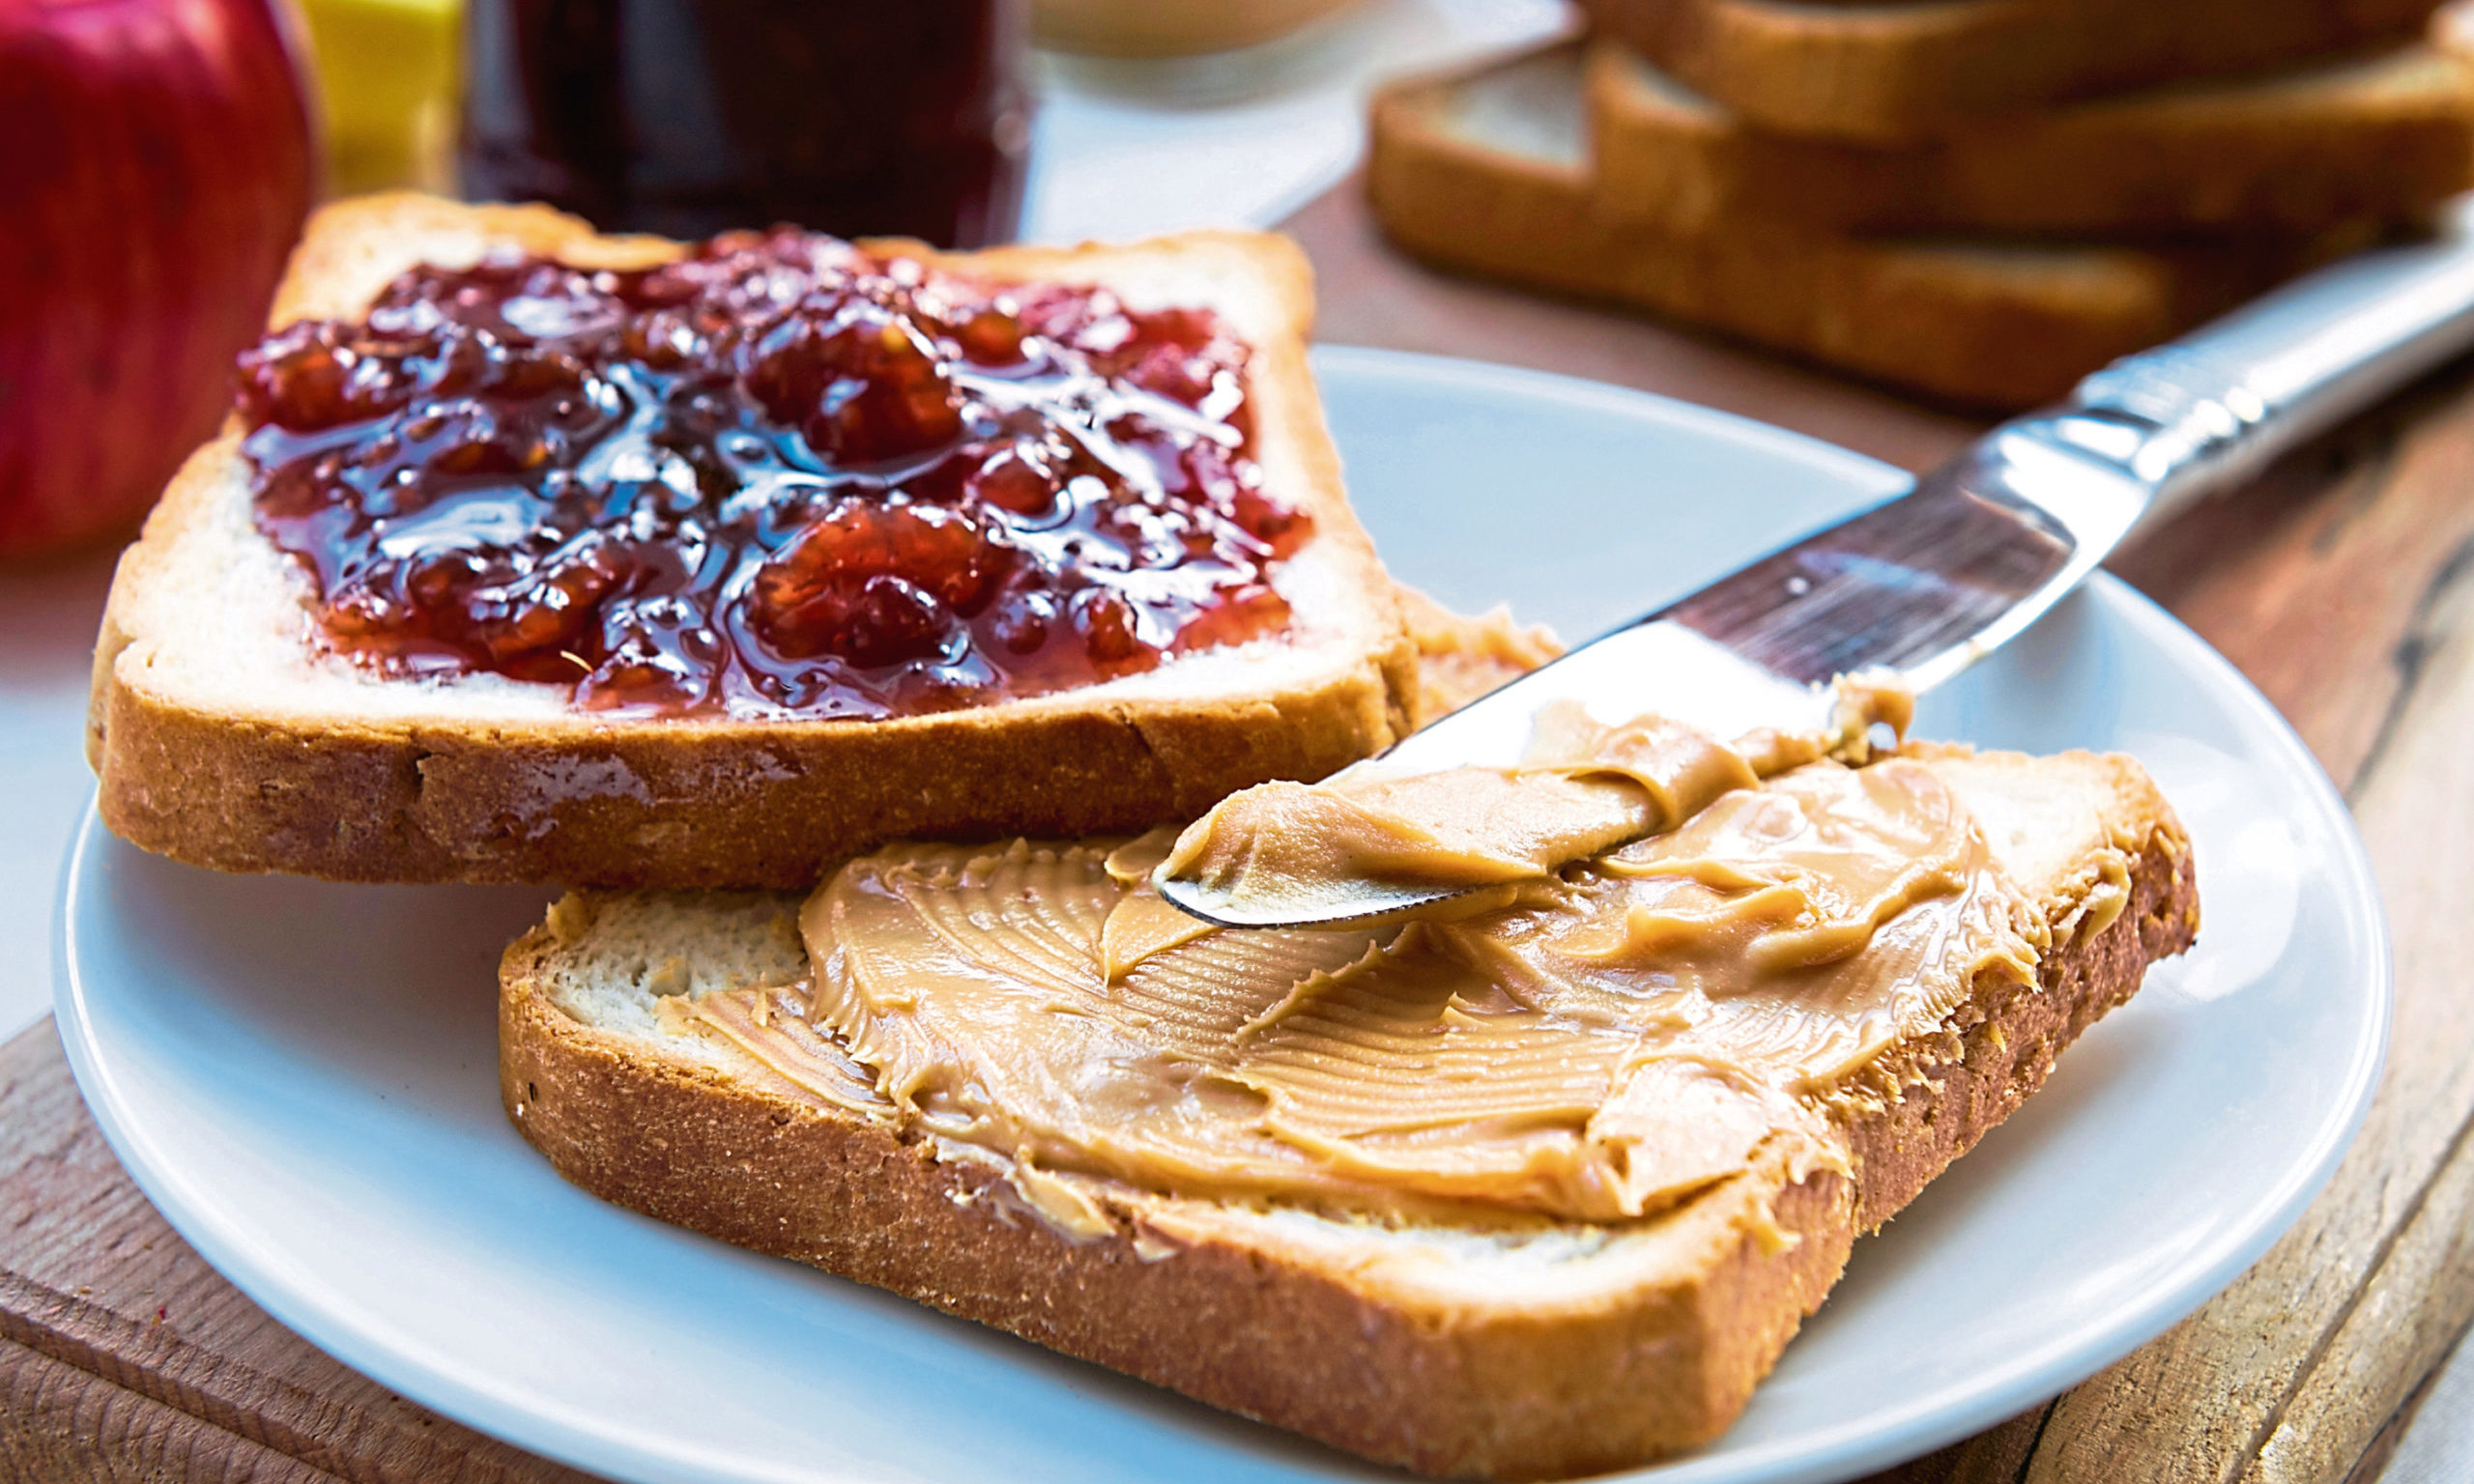 A peanut butter and jelly sandwich doesn't make it onto Martel's dining table.